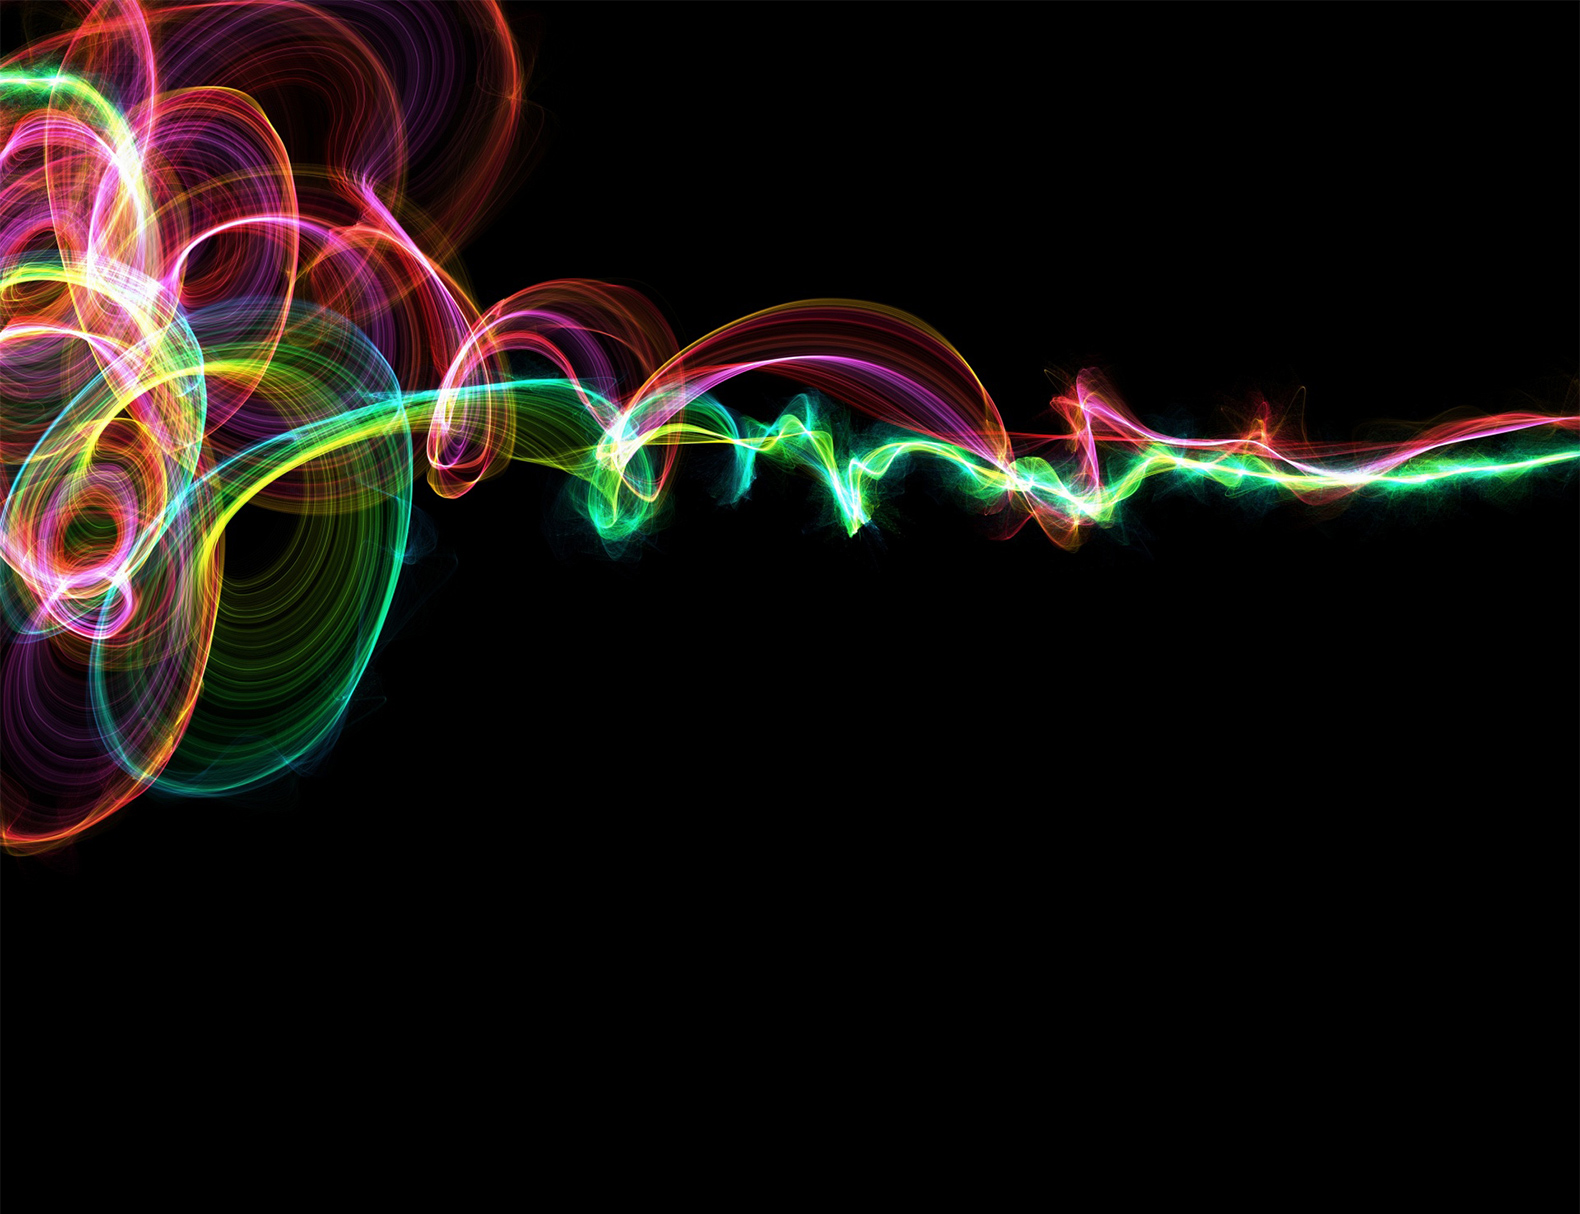 Australian researchers store light as sound for the first time